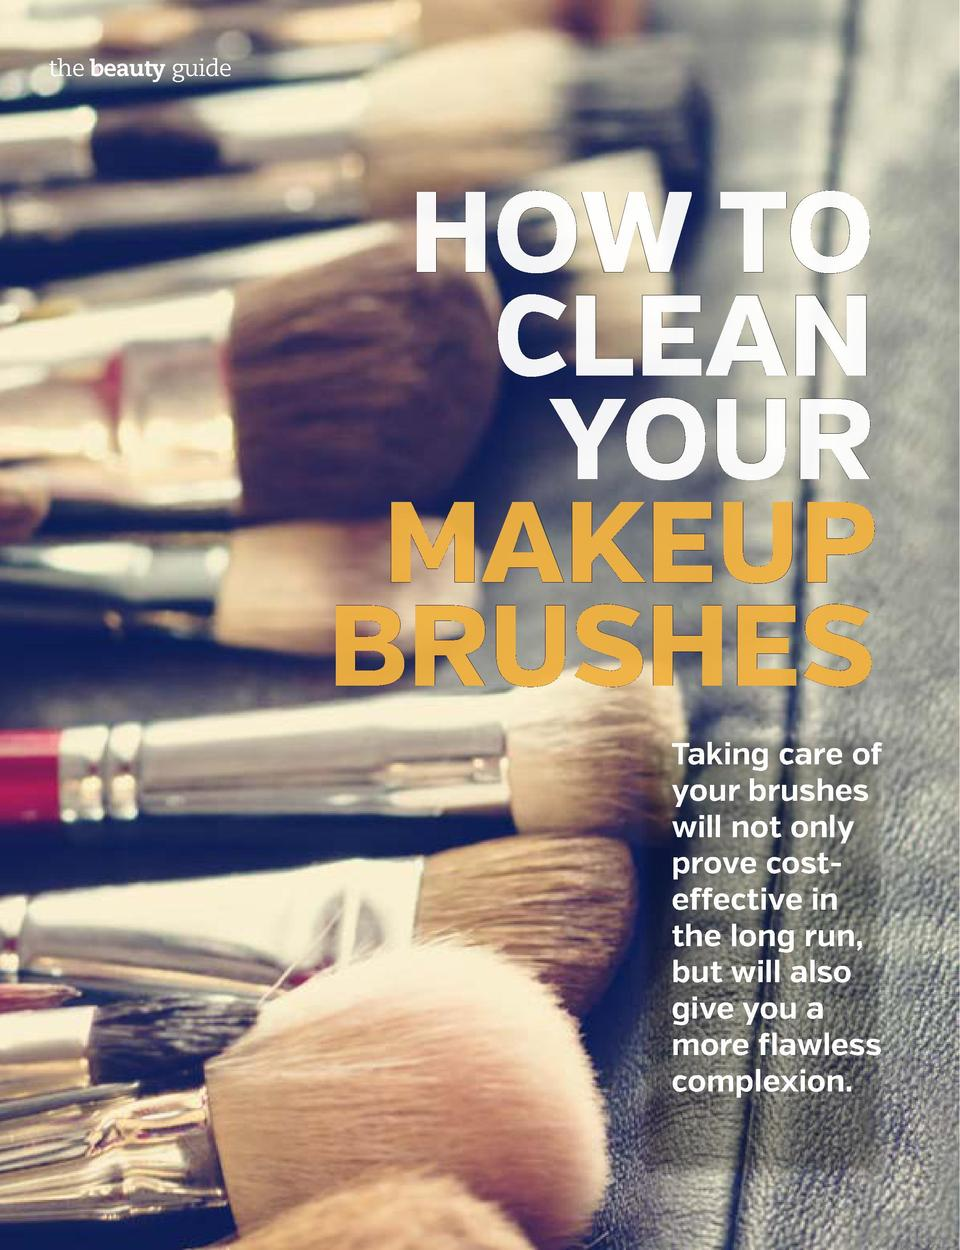 MAKEUP  MAKEUP  C  leaning brushes is one of the most crucial parts of your beauty regimen. Not washing your brushes is li...